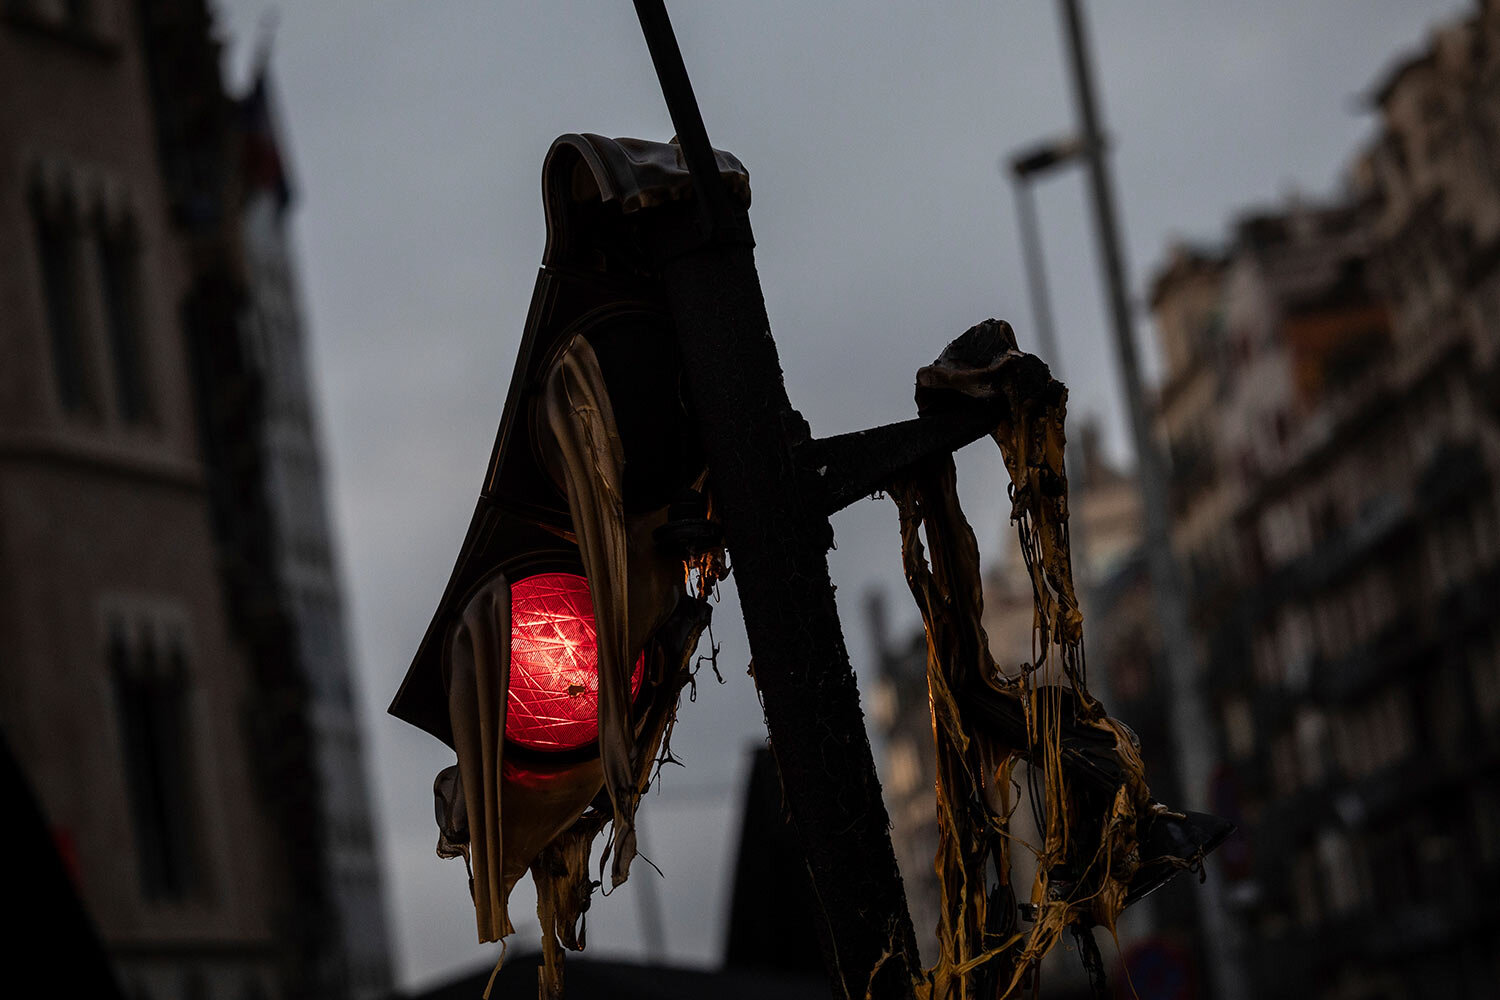 A damaged traffic light, following Friday clashes between protestors and police, in Barcelona, Spain, Saturday, Oct. 19, 2019. (AP Photo/Bernat Armangue)